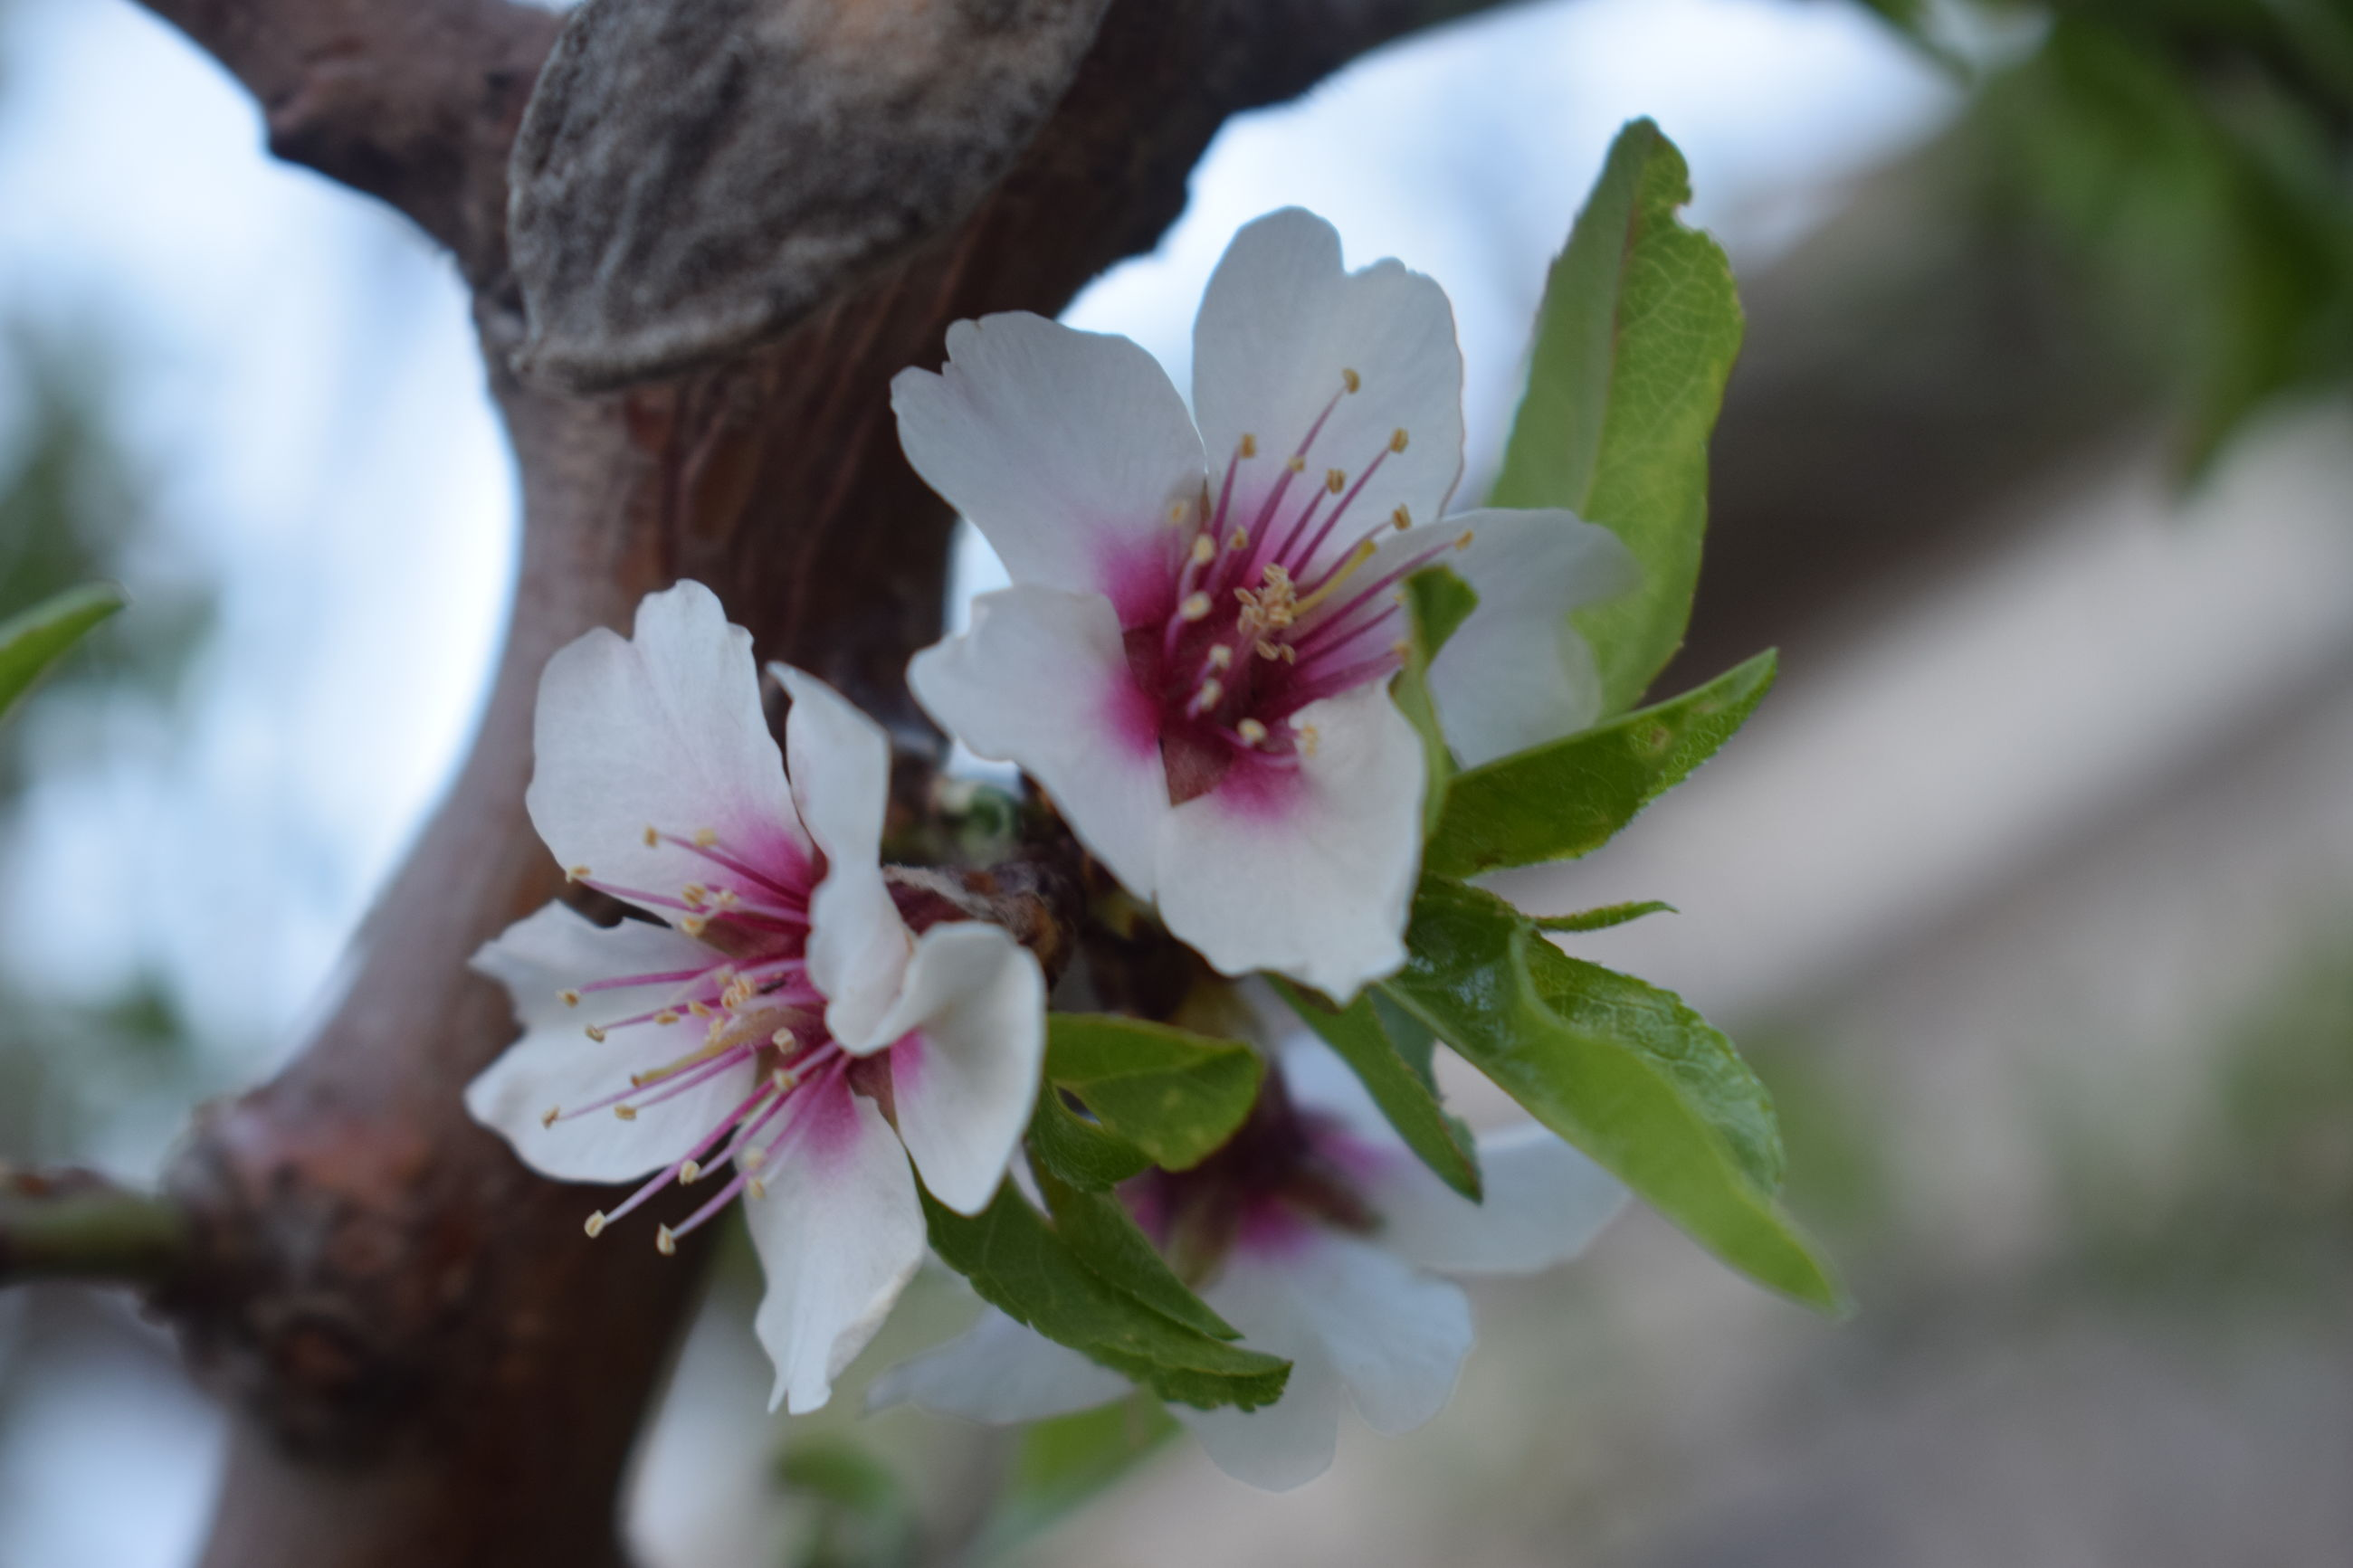 flower, flowering plant, plant, growth, beauty in nature, fragility, freshness, vulnerability, petal, close-up, plant part, leaf, inflorescence, nature, flower head, white color, selective focus, pink color, no people, day, pollen, outdoors, springtime, cherry blossom